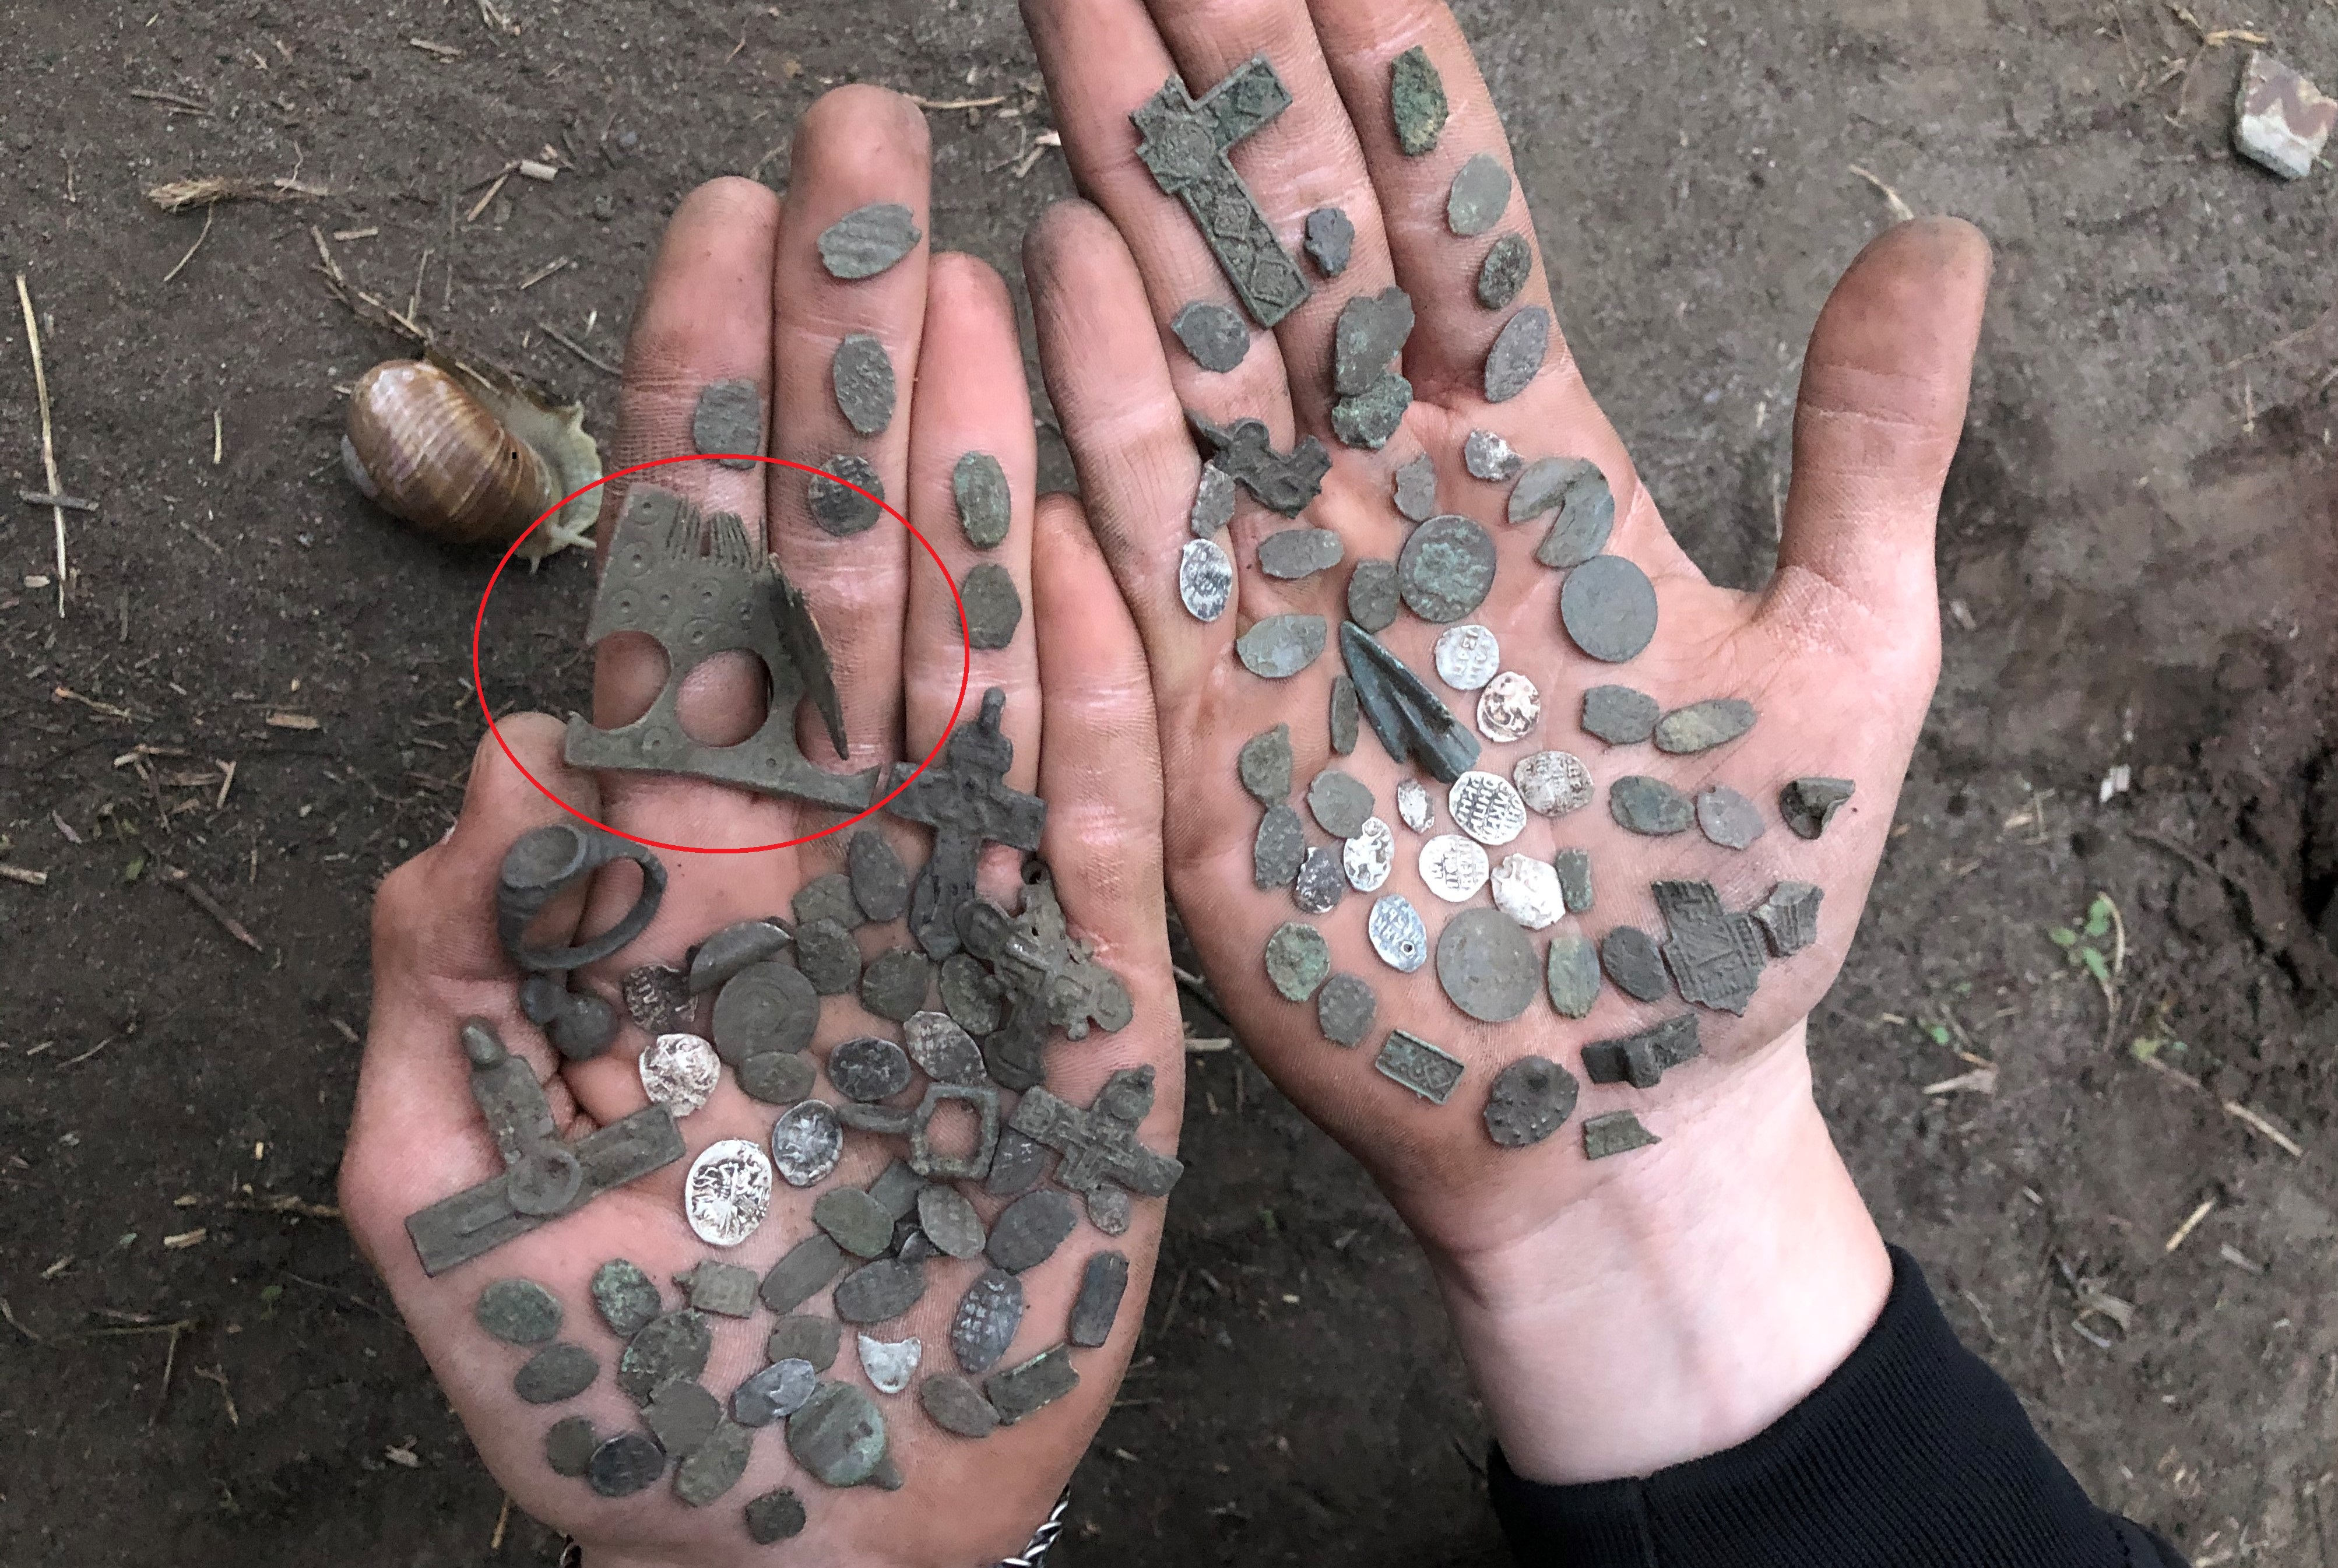 finds of the Middle Ages